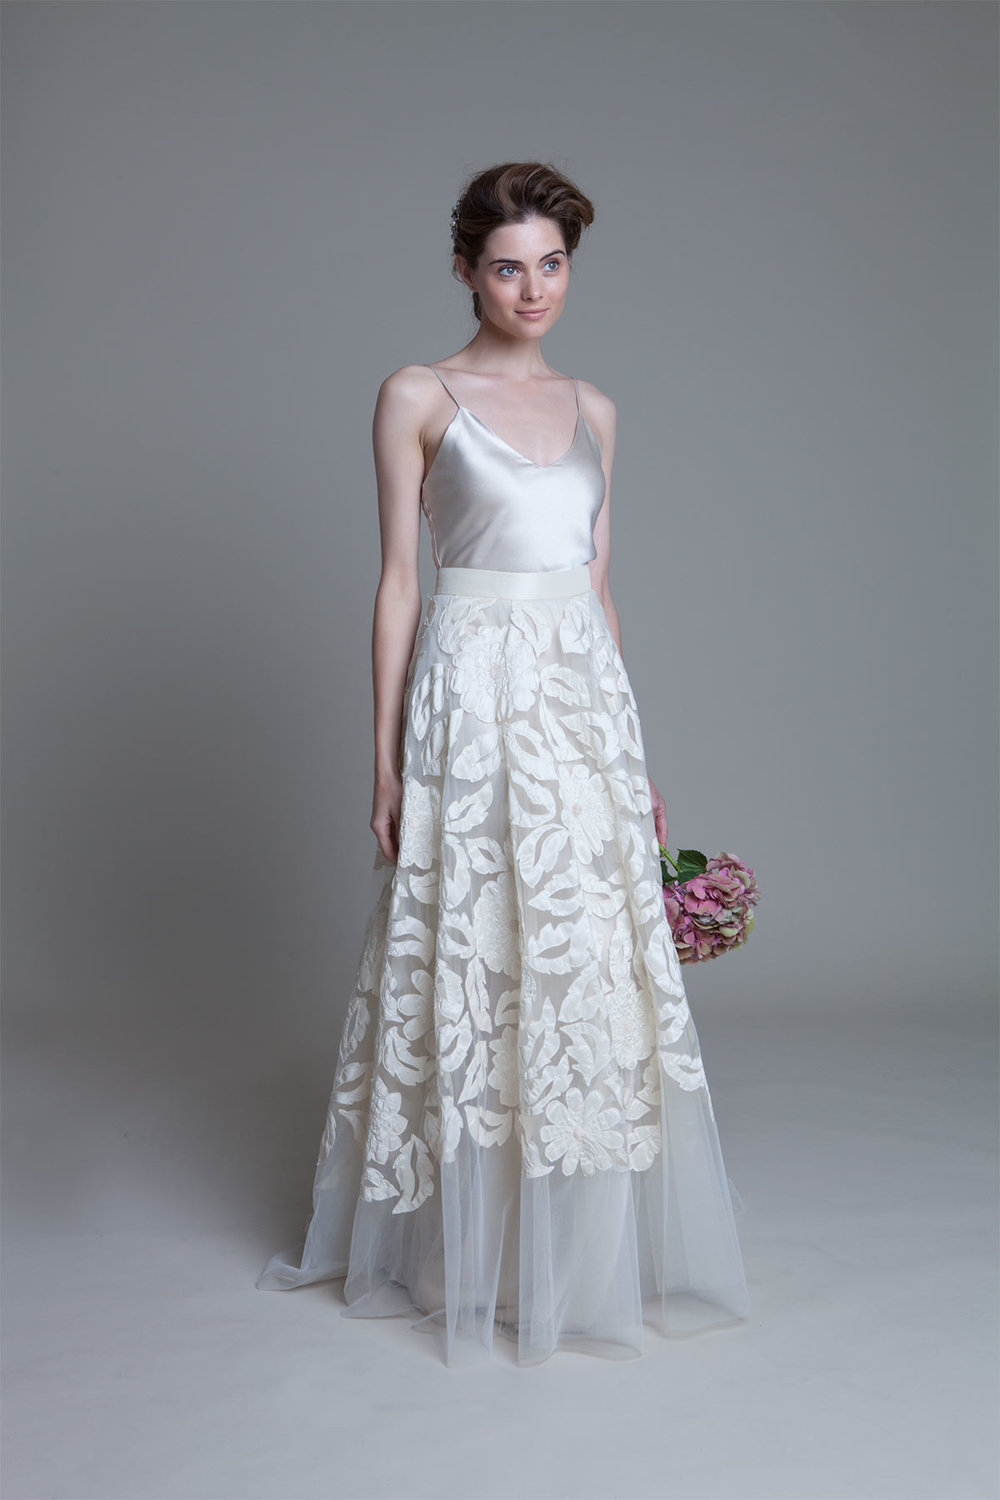 Susie hand applique tulle skirt with iris backless bias cut slip wedding dress by Halfpenny London